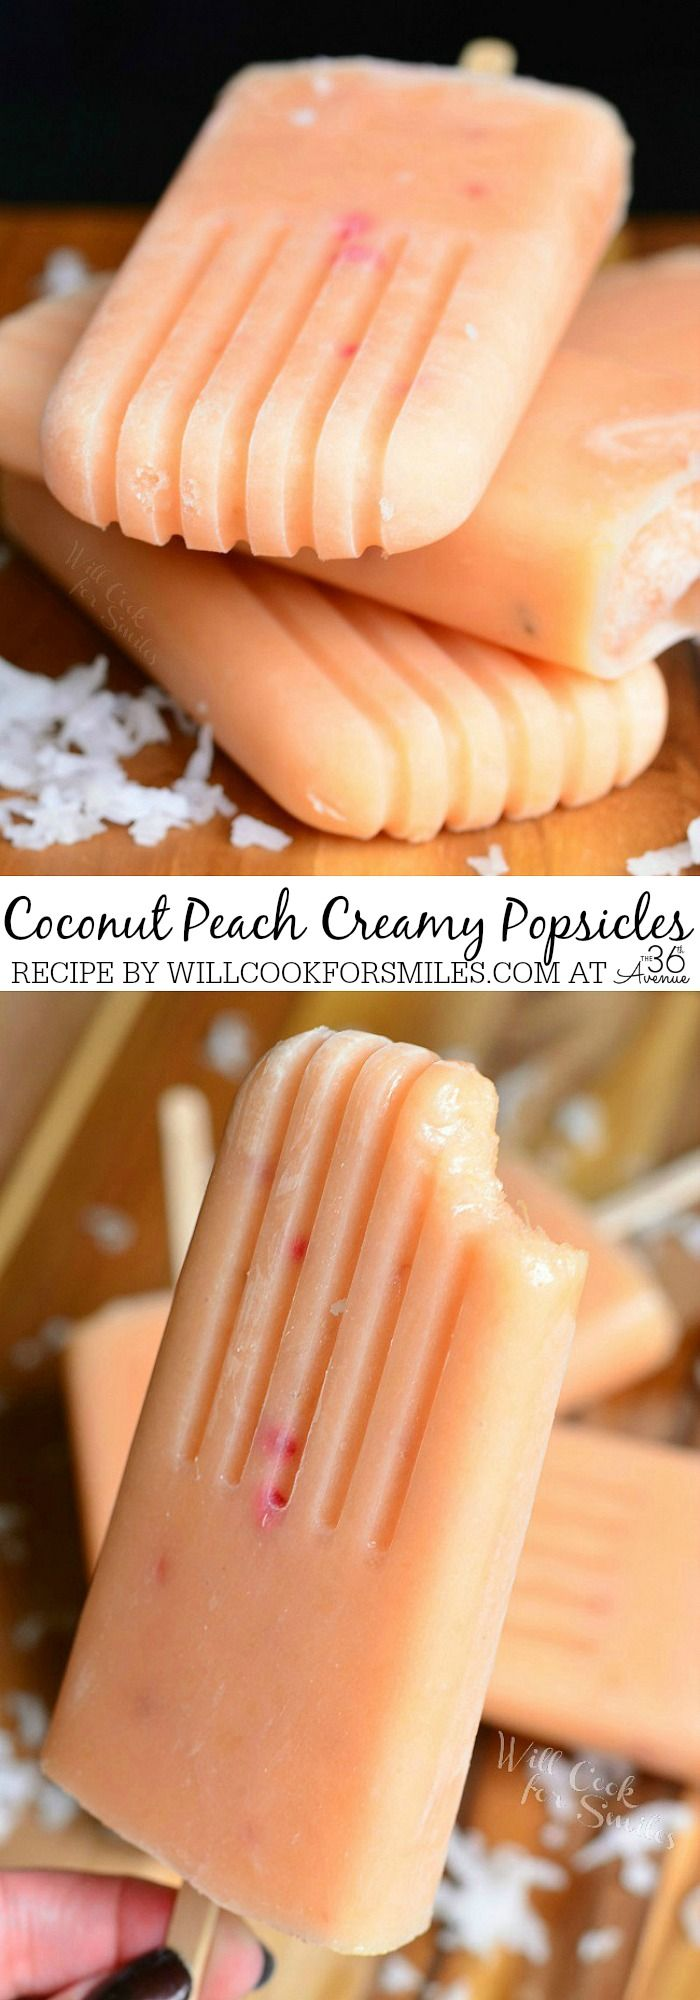 Coconut Peach Creamy Popsicles #homemadepopsicleshealthy